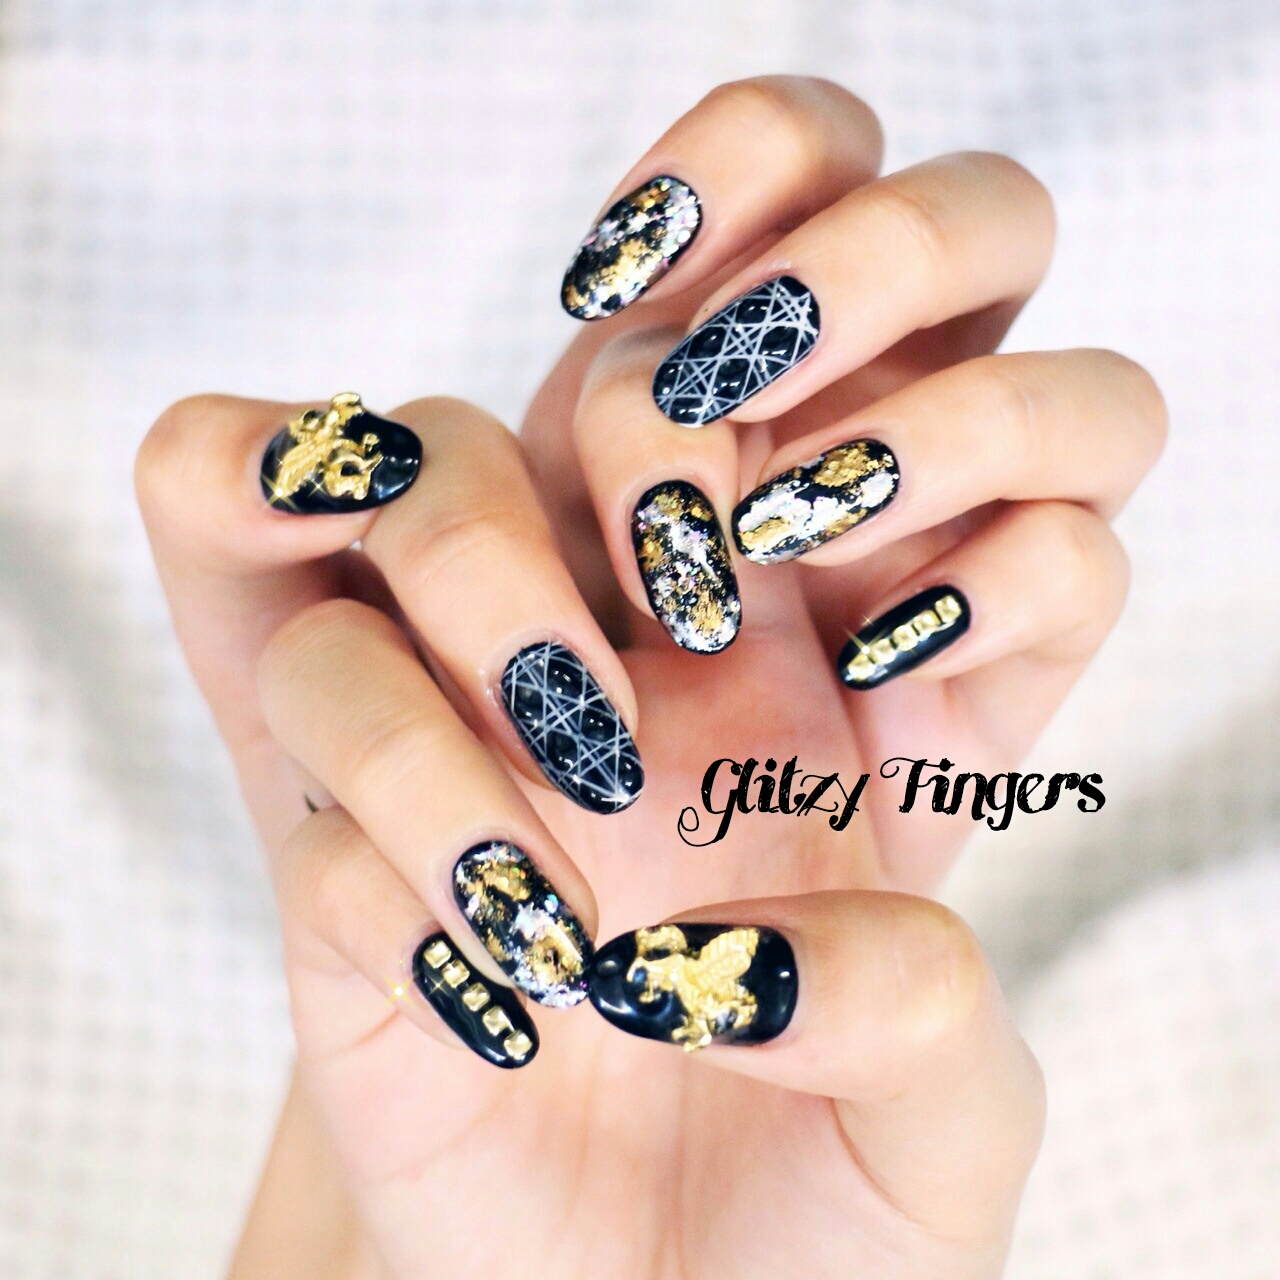 Cute Nails Glitzy Fingers